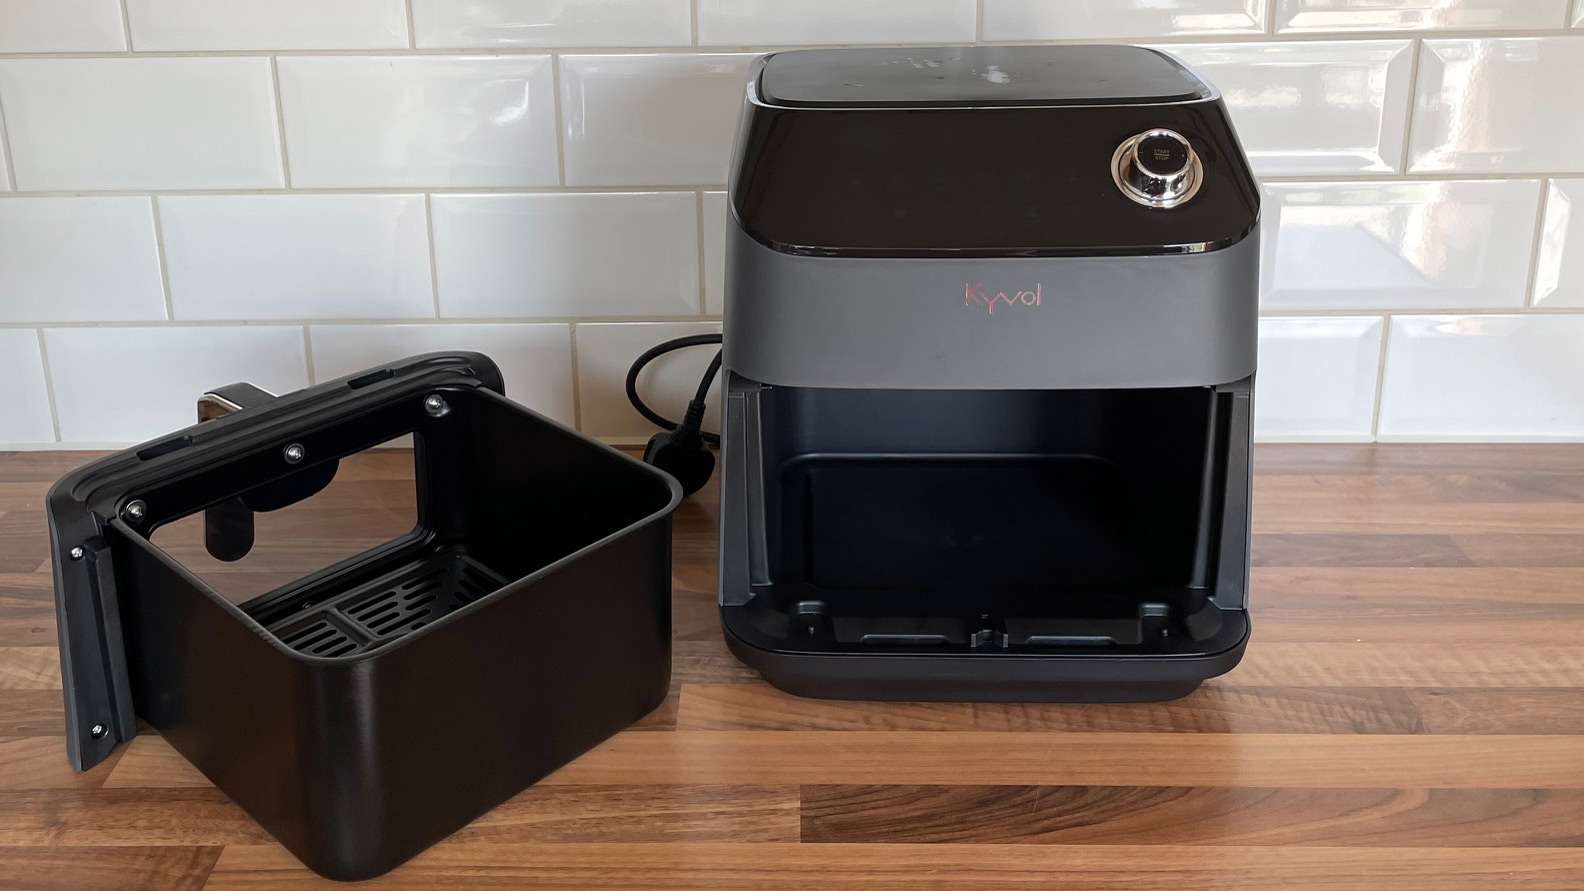 The Kyvol AF600 Air Fryer on a kitchen countertop with the frying basket removed and positioned to the left hand-side